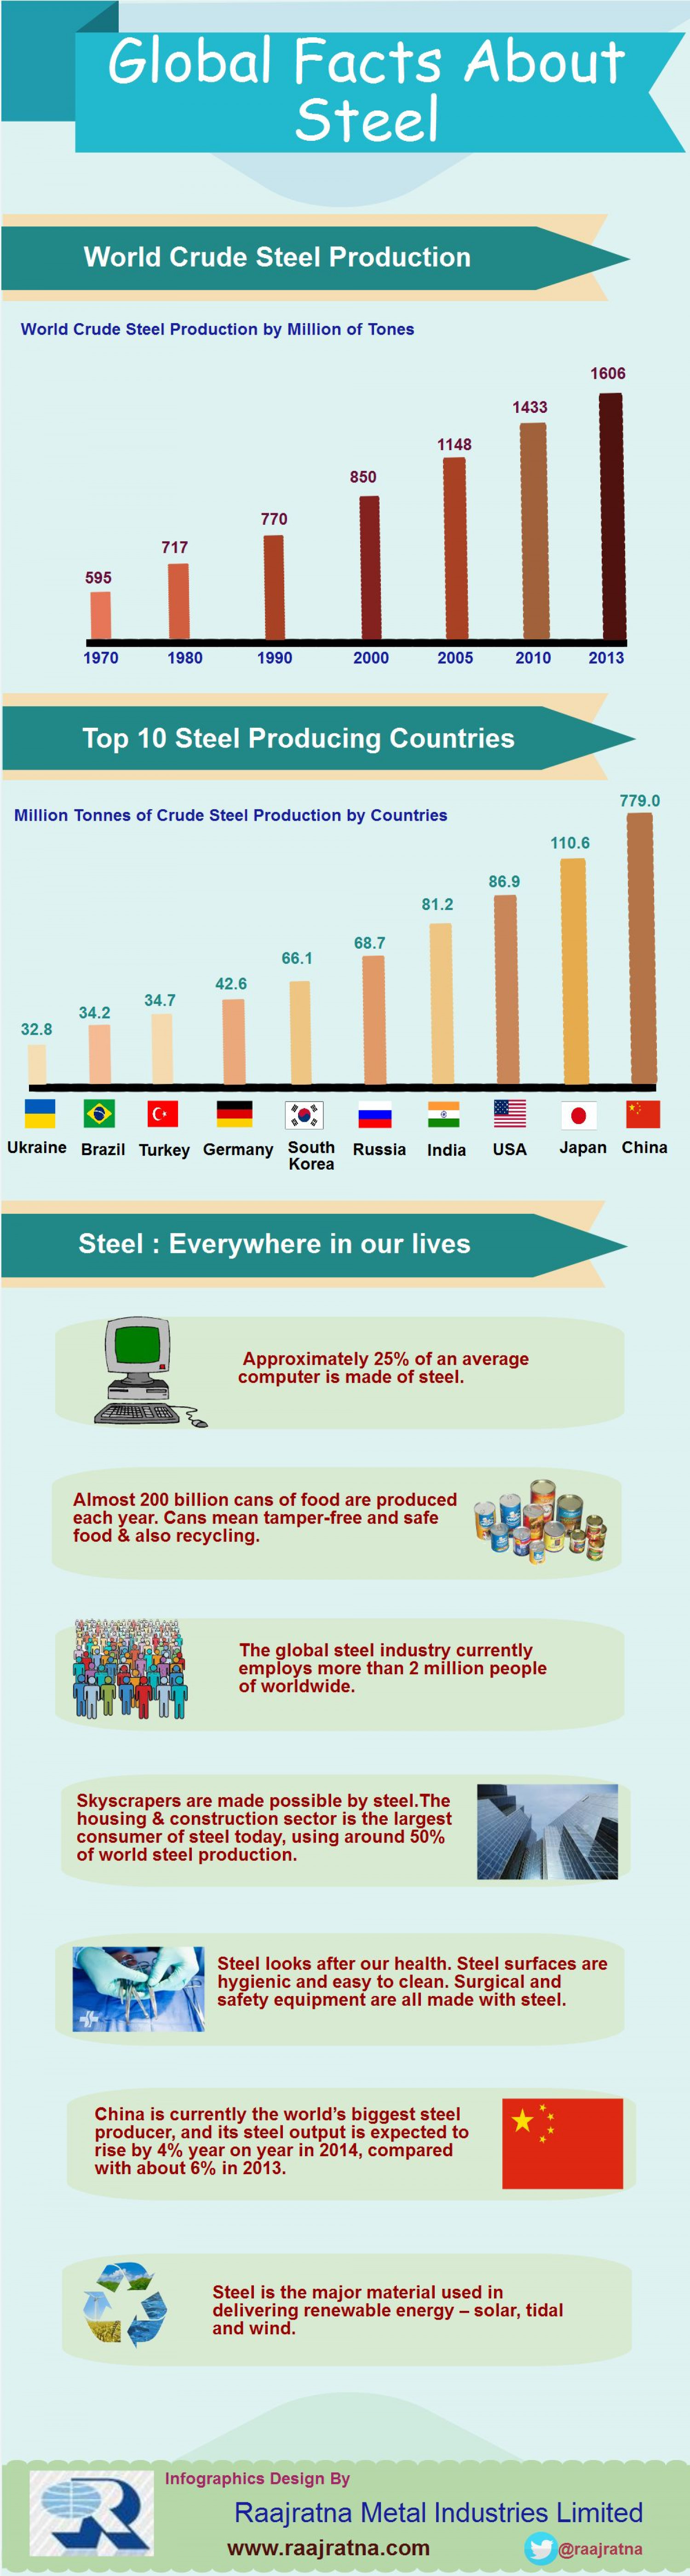 Global Facts About Steel Infographic